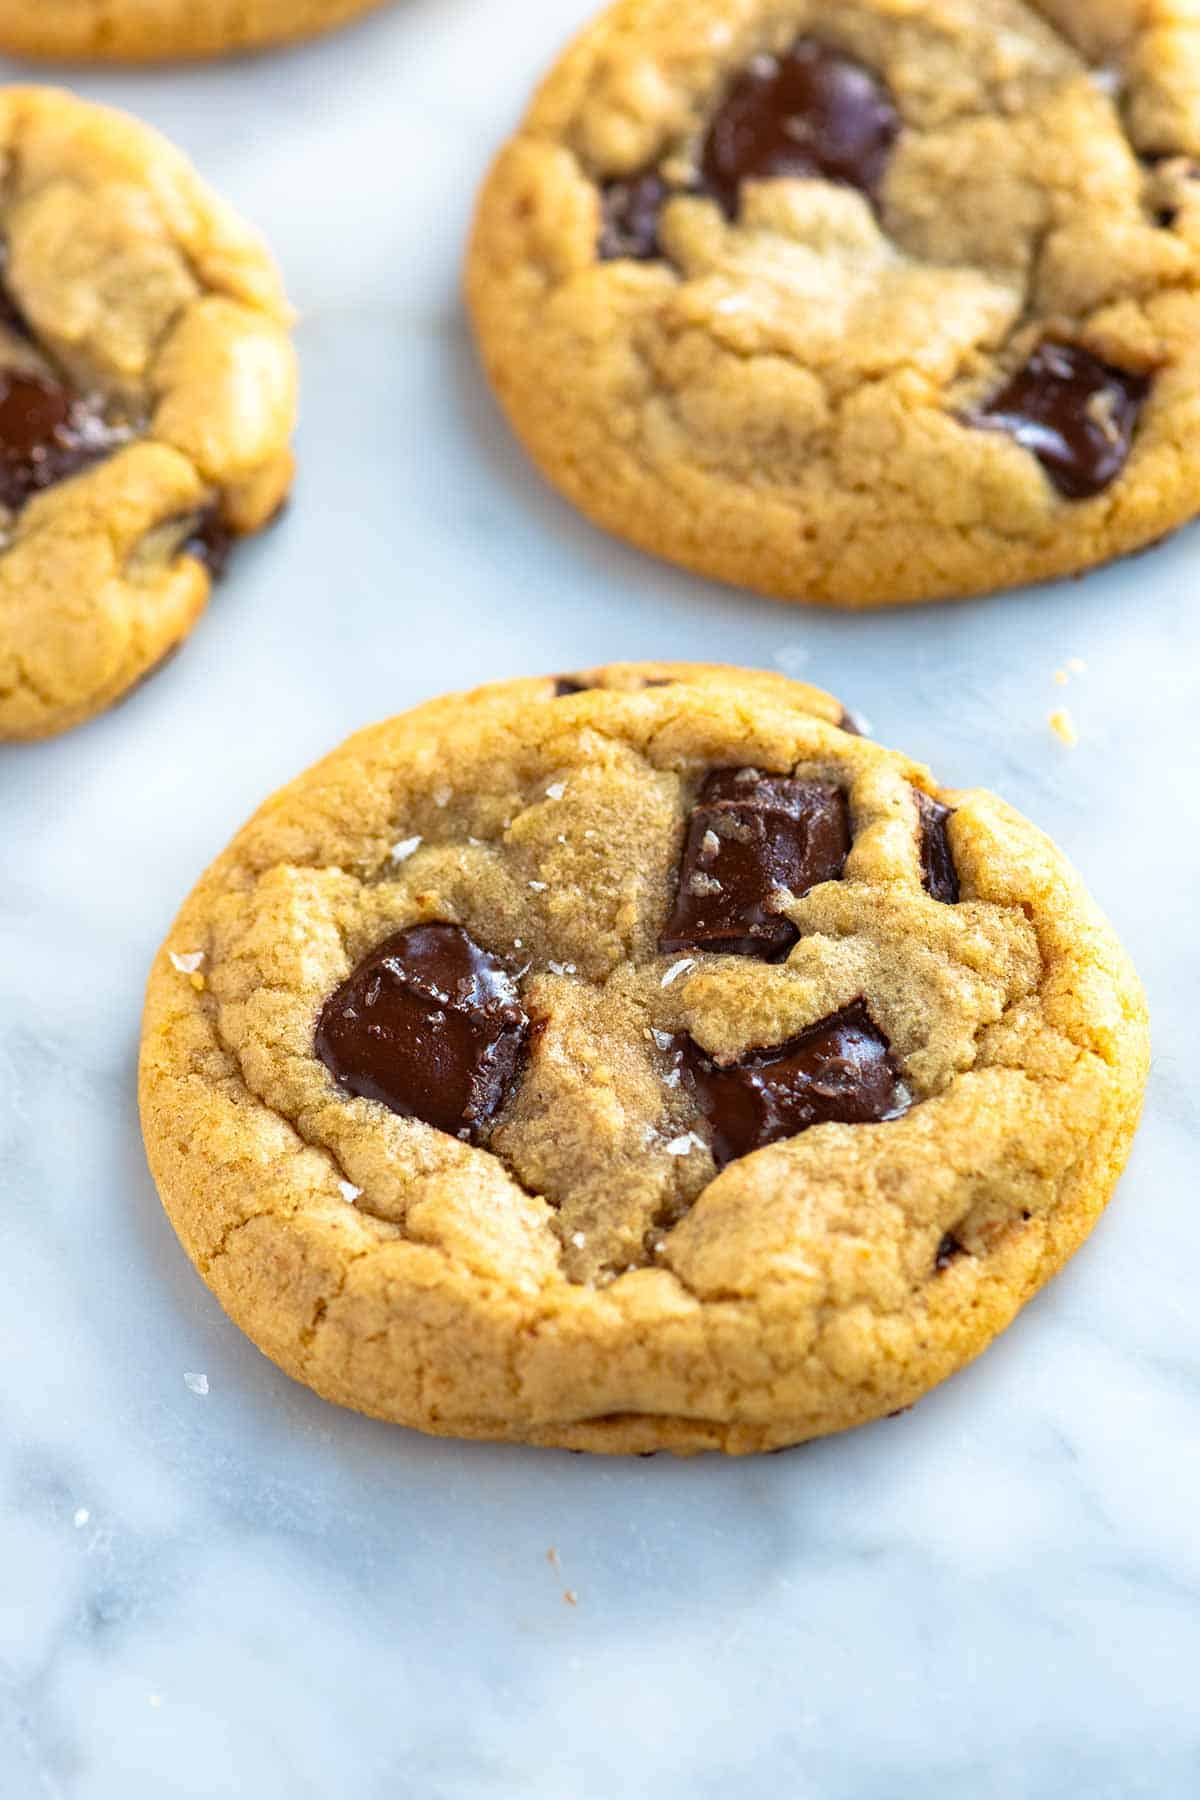 Melted butter is the secret to making quick and easy chocolate chip cookies! These cookies are soft in the center, chewy around the middle, and a little crispy around the edges.